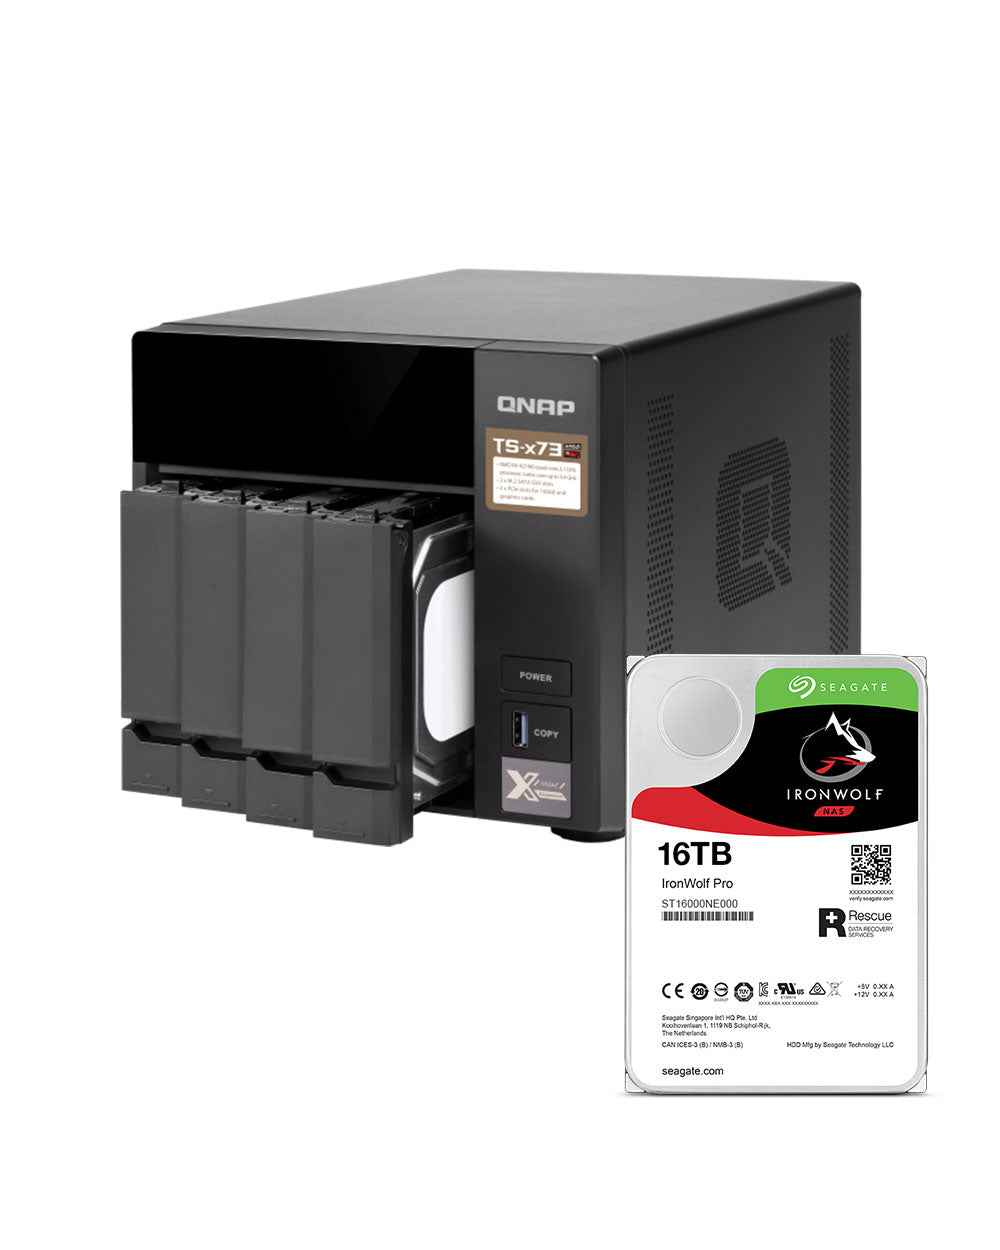 QNAP TS-473-4G 64TB with 16TB Seagate IronWolf Pro Drives